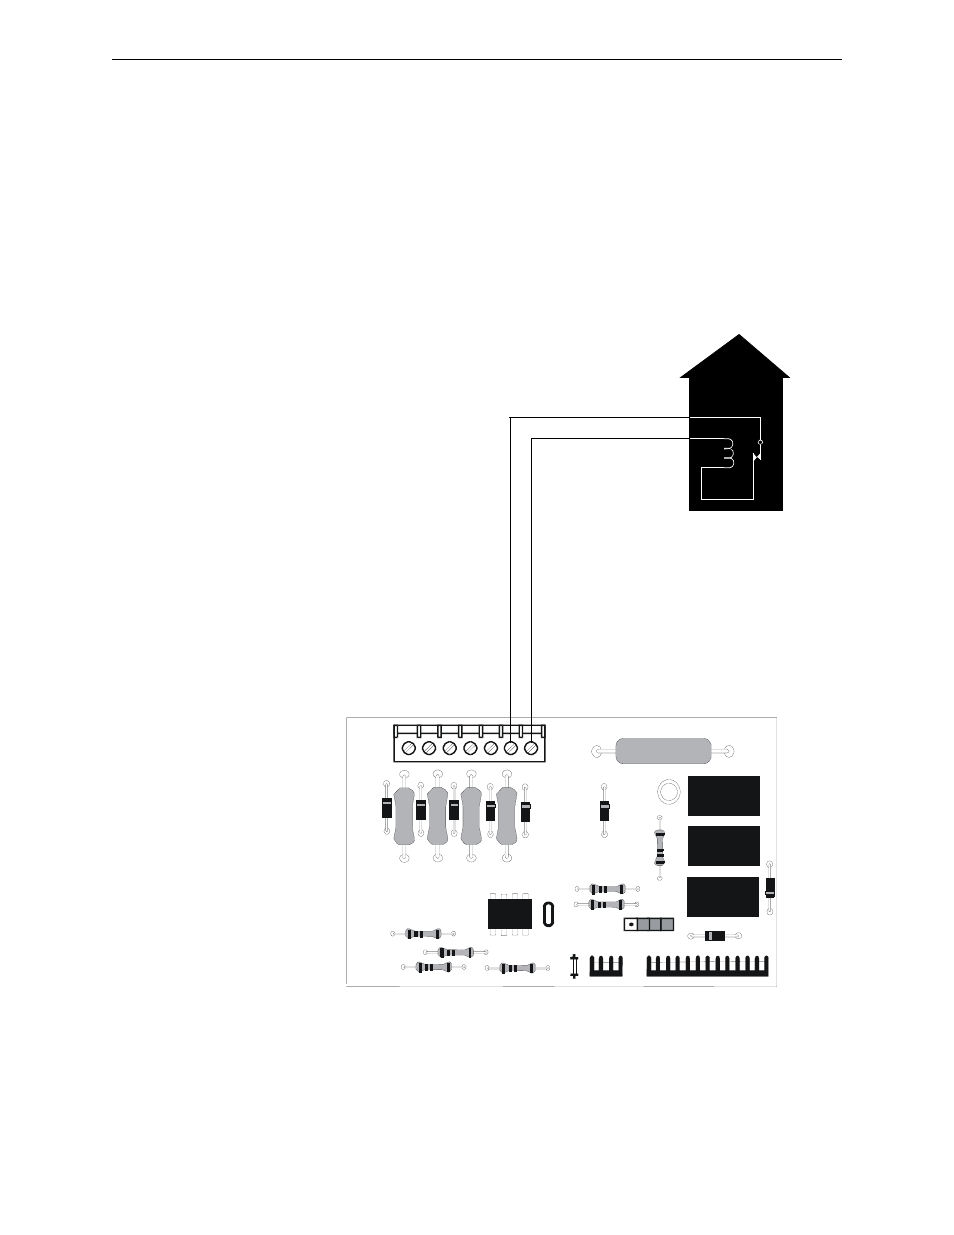 Gamewell Fire Alarm Wiring Diagram Libraries Box Libraryfire Lite Ms 9200udlsc Addressable Control Panel